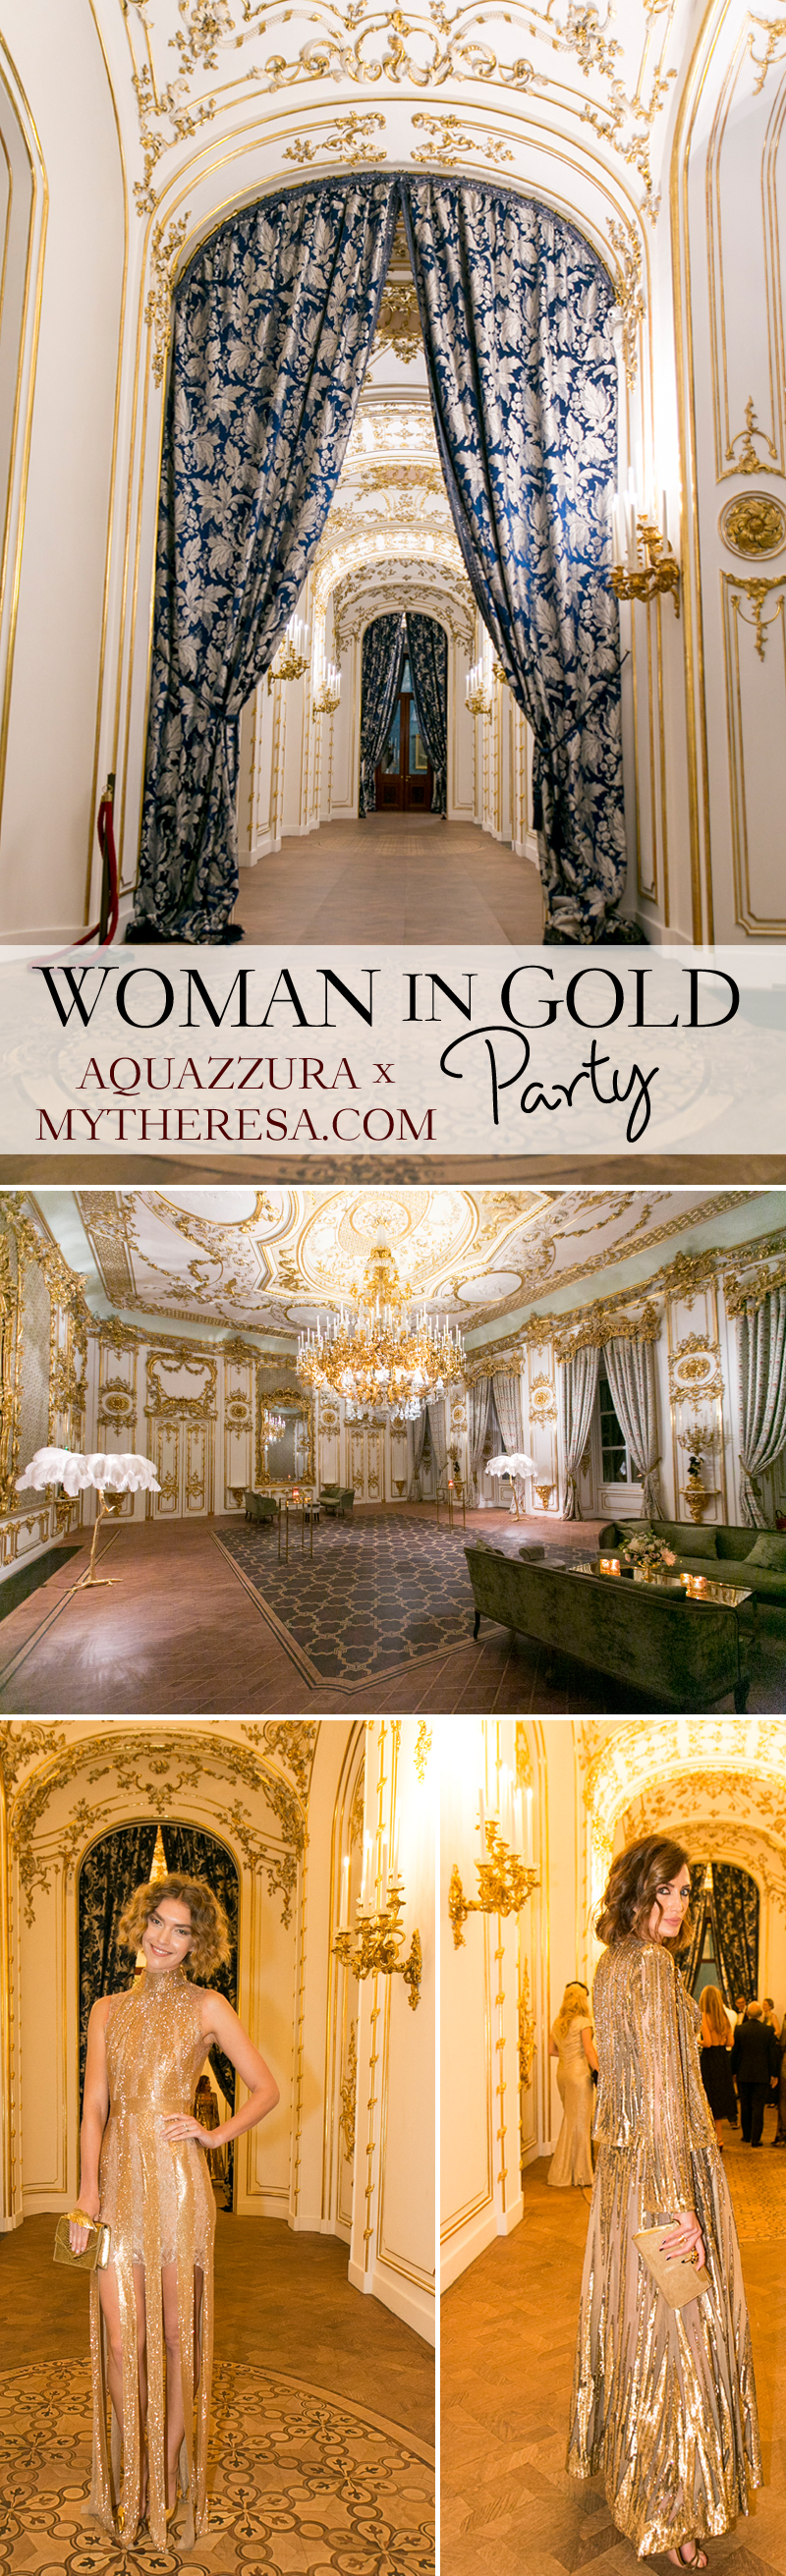 Aquazzura, Liechtenstein Palace, Vienna Palace, Vienna, Gold Party Decor, Wedding Decor in Gold, Aquazzura Woman in Gold Party, MyTheresa.com, Perfect Wedding Magazine, Gold Wedding Decor, Perfect Wedding Blog